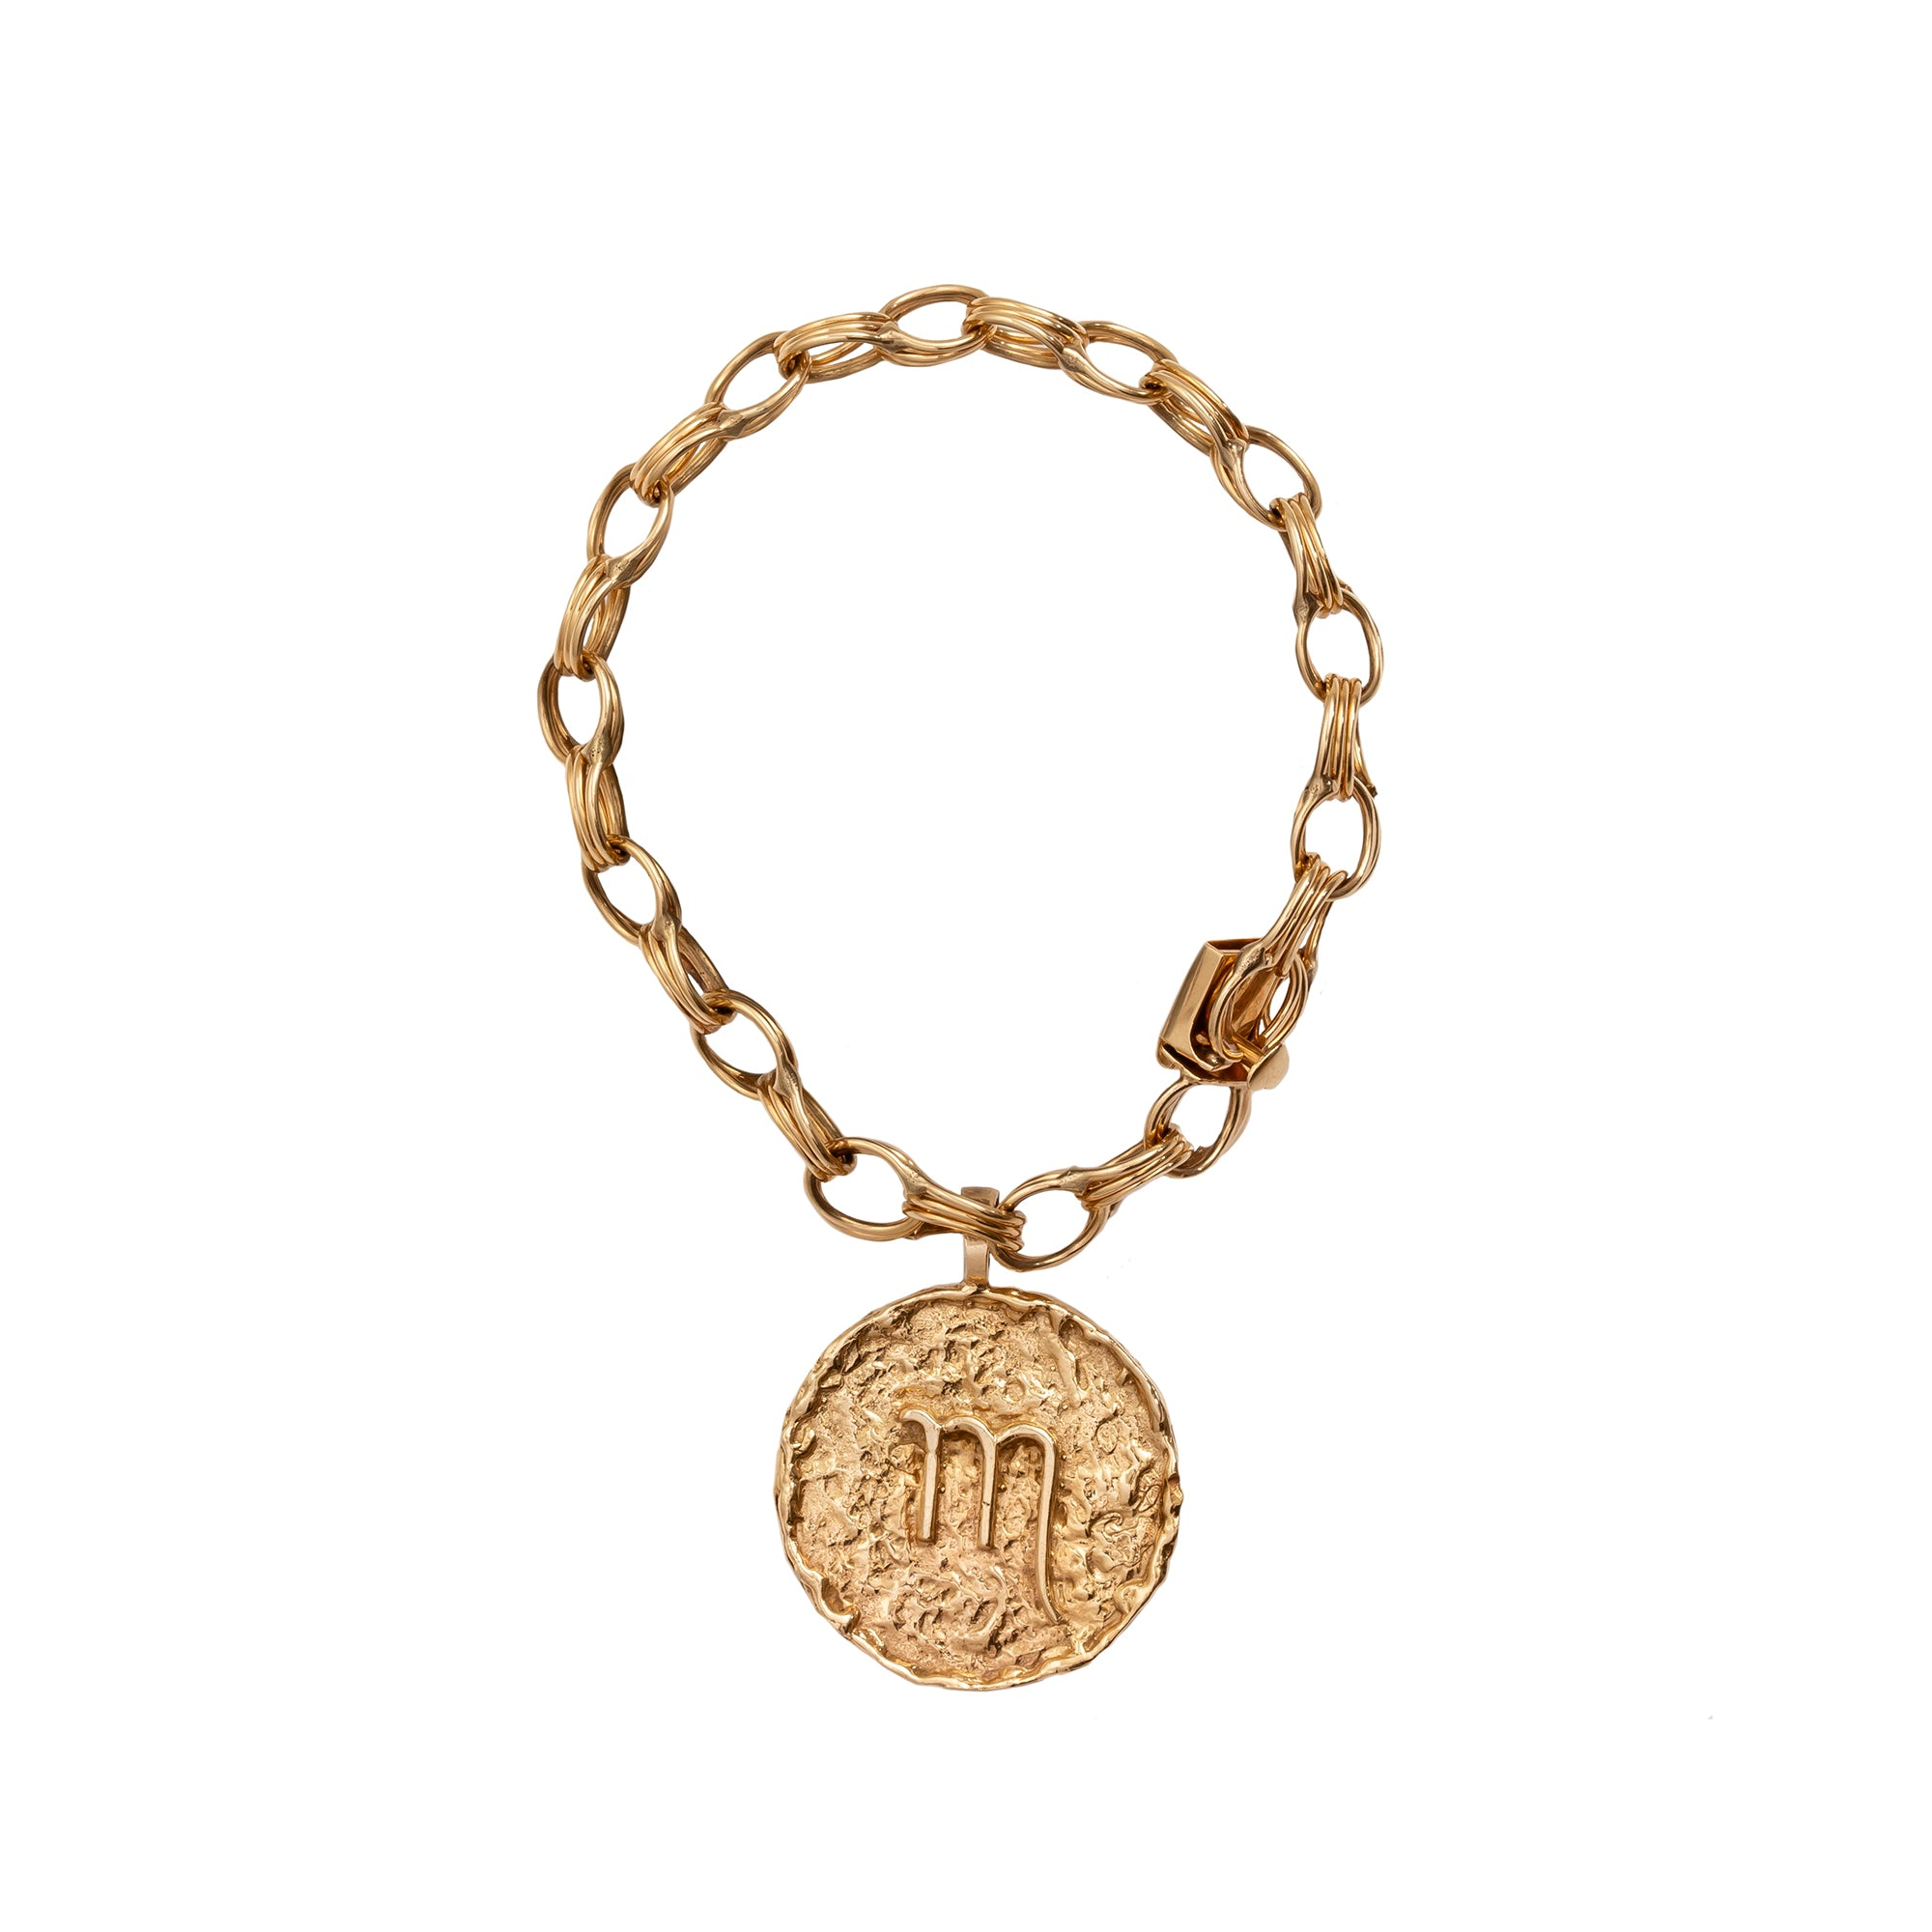 Gold Scorpio Medallion Bracelet - Antique & Vintage - Bracelets | Broken English Jewelry